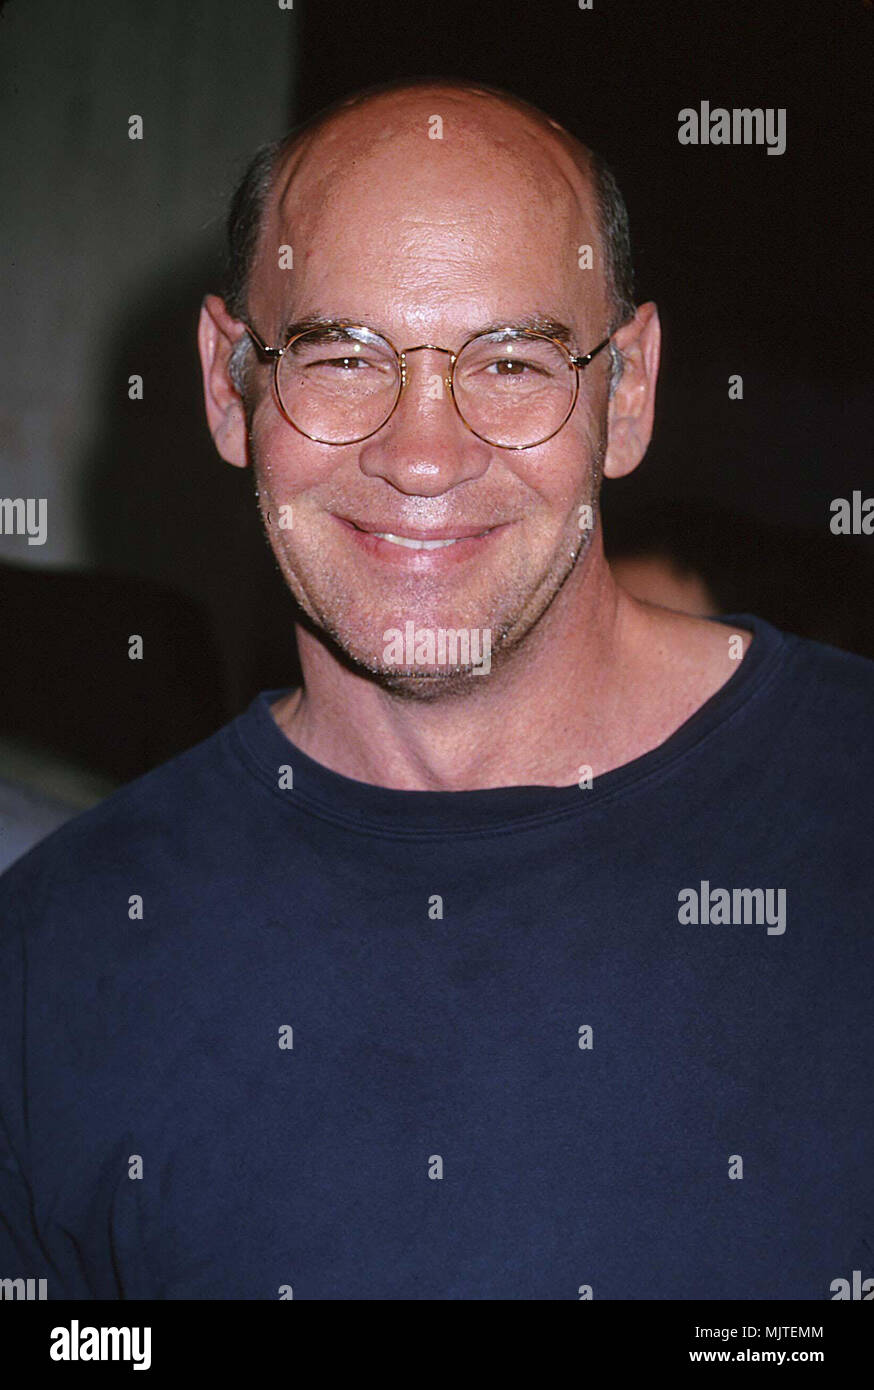 Pileggi Mitch(X-Files).JPGPileggi Mitch(X-Files)  Event in Hollywood Life - California,  Red Carpet Event, Vertical, USA, Film Industry, Celebrities,  Photography, Bestof, Arts Culture and Entertainment, Topix Celebrities fashion /  from the Red Carpet-1994-2000, one person, Vertical, Best of, Hollywood Life, Event in Hollywood Life - California,  Red Carpet and backstage, USA, Film Industry, Celebrities,  movie celebrities, TV celebrities, Music celebrities, Photography, Bestof, Arts Culture and Entertainment,  Topix, headshot, vertical, from the year 2000, inquiry tsuni@Gamma-USA.com Credit  - Stock Image